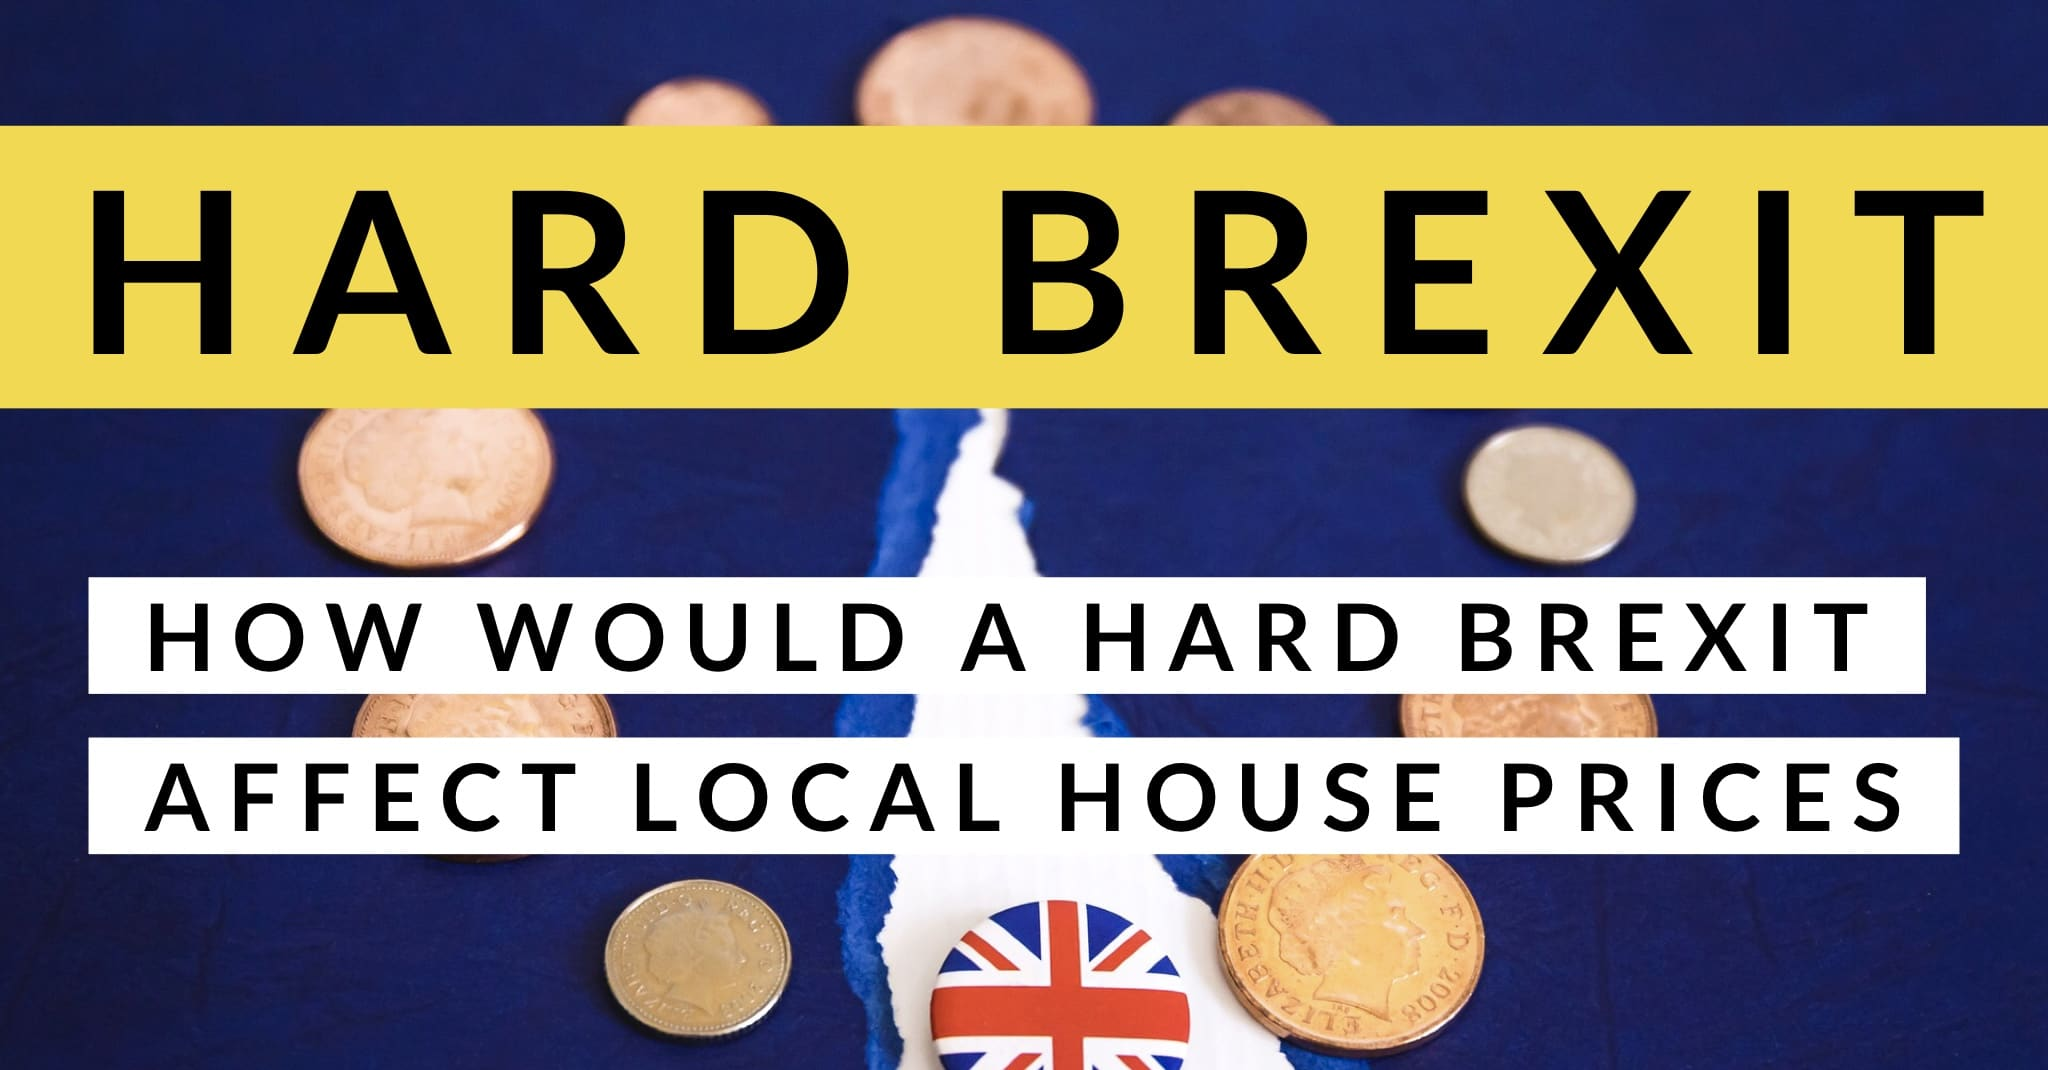 How Would a Hard Brexit Affect Canterbury House Prices?